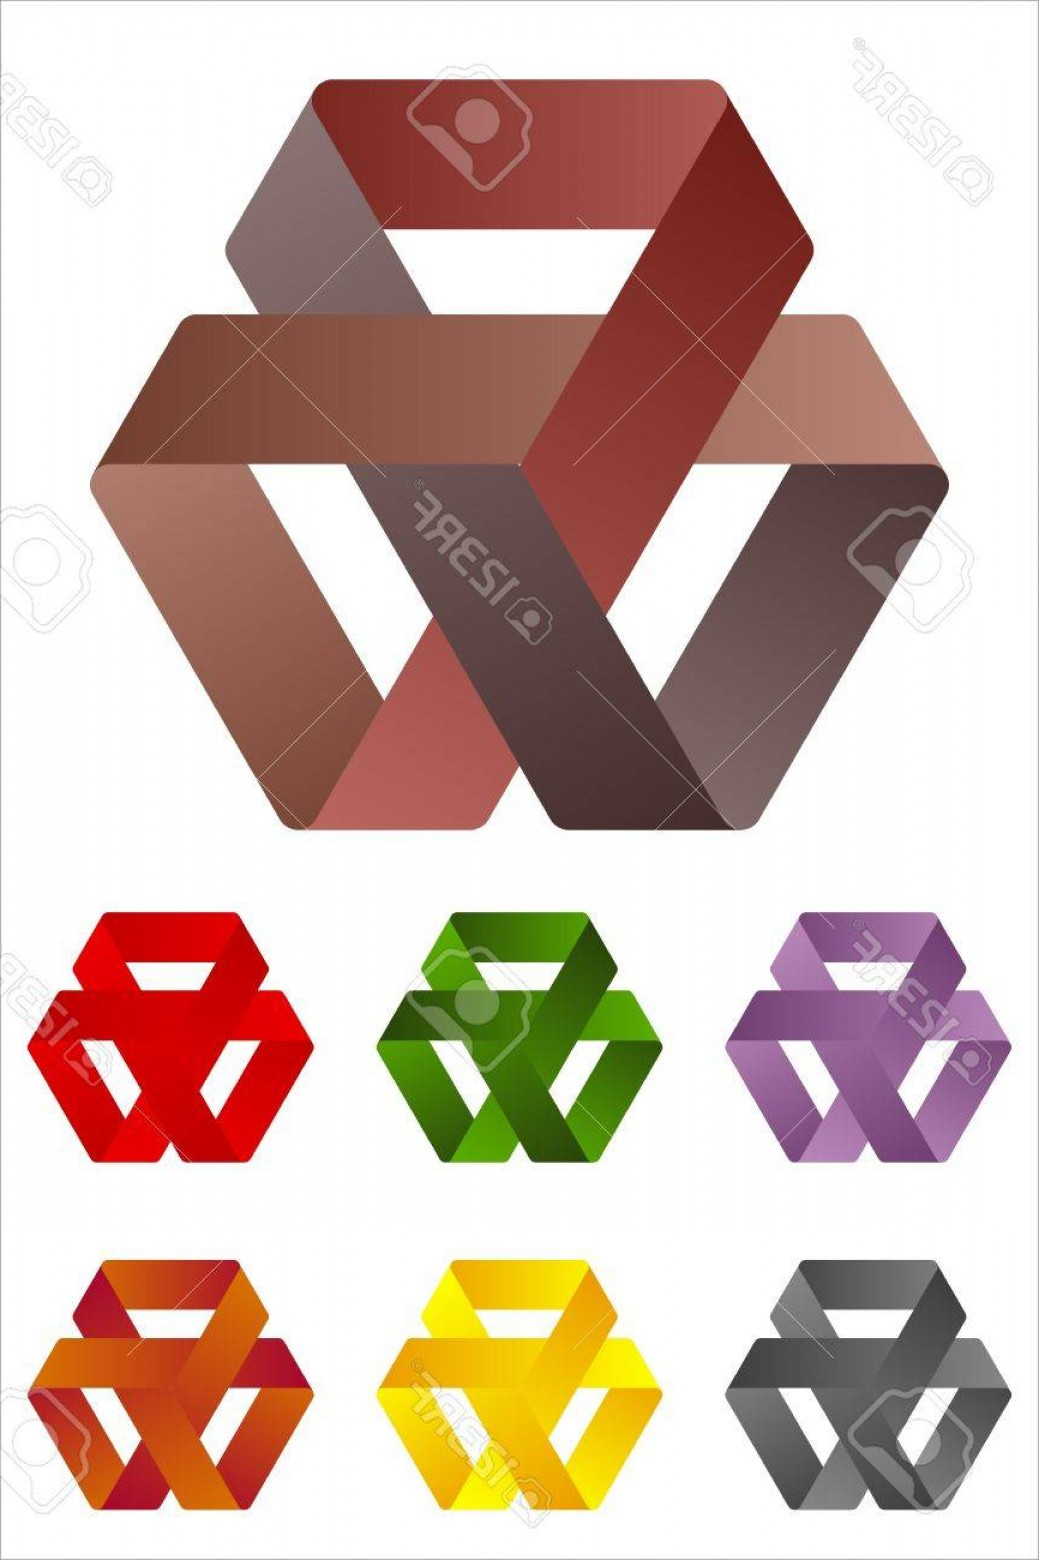 Cross And Ribbon Vector: Photodesign Triangles Logo Element Infinite Cross Ribbon Vector Icon Template